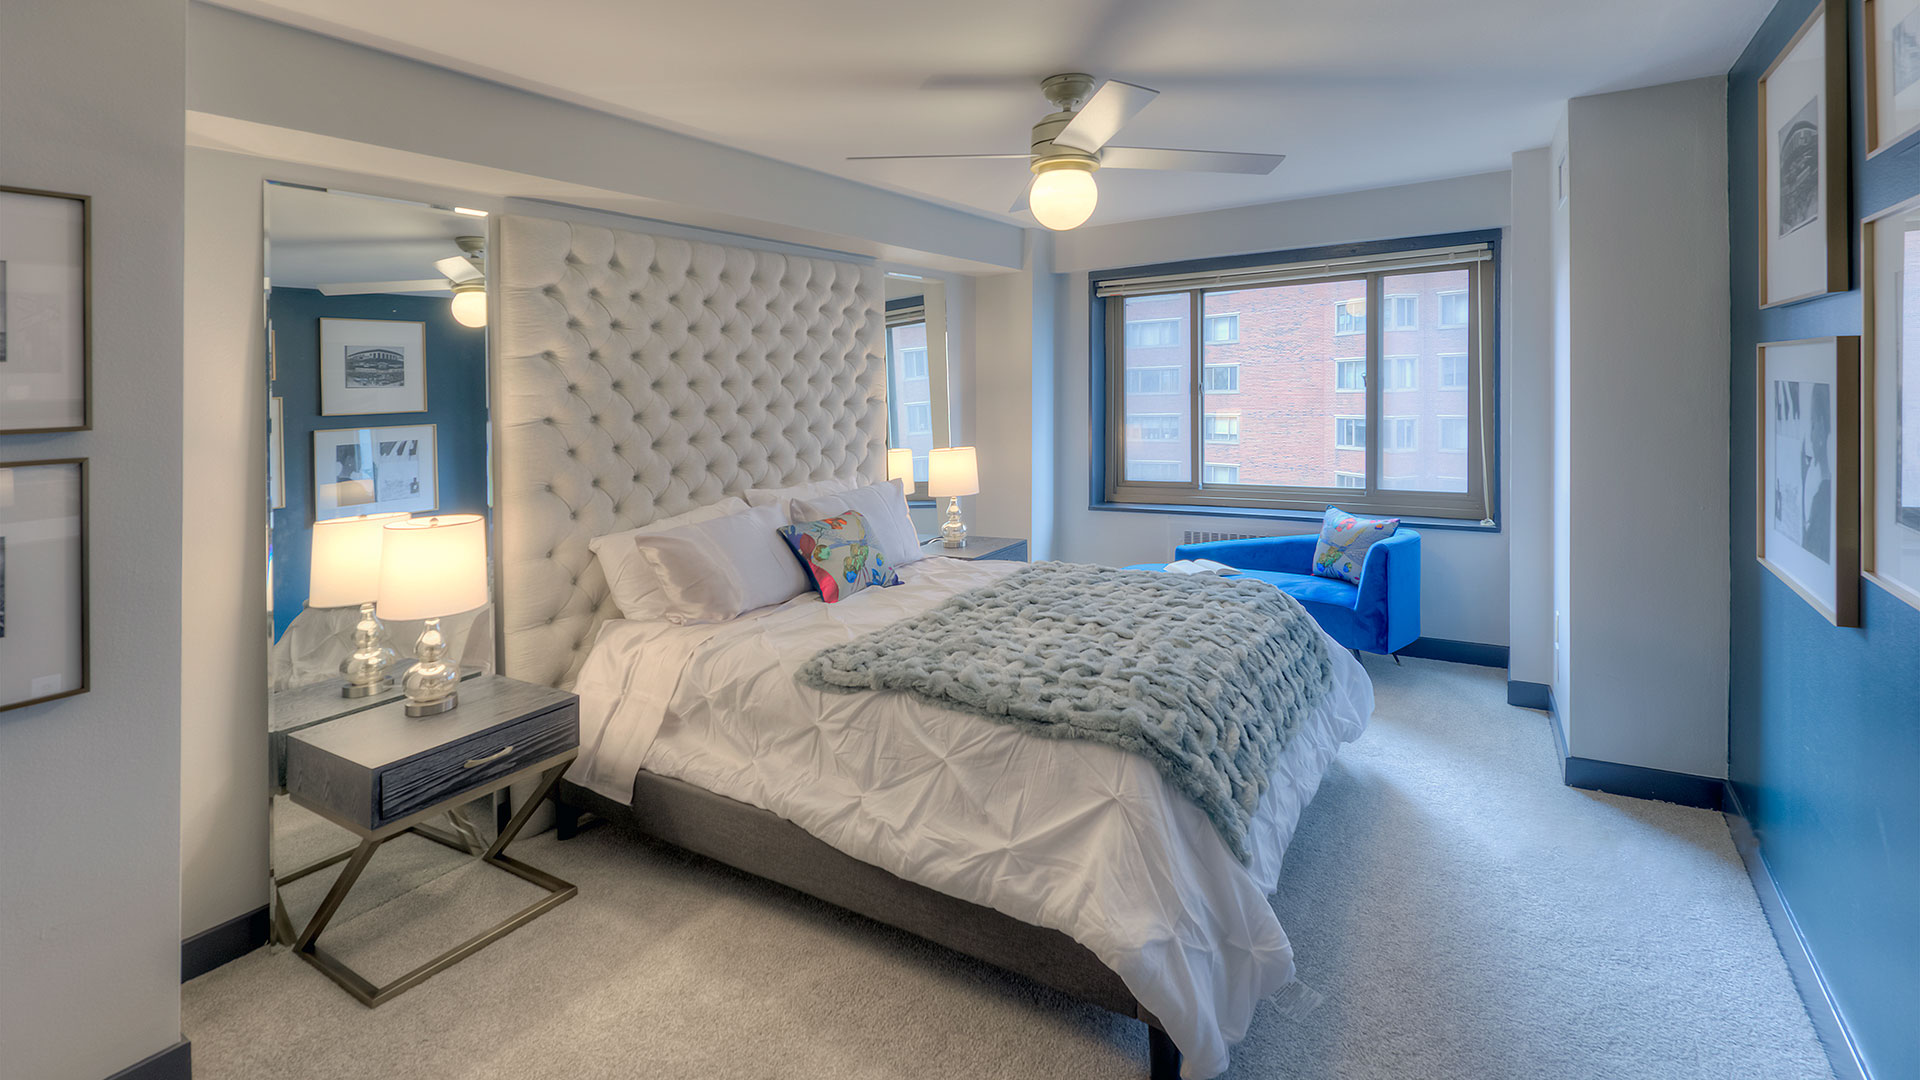 A bedroom in a residence at 1350-1360 Lake Shore Drive. A large bed with headboard to the ceiling is on the left wall with end tables and lit lamps on both sides. A lounge chair sits below the window on the far side of the room.